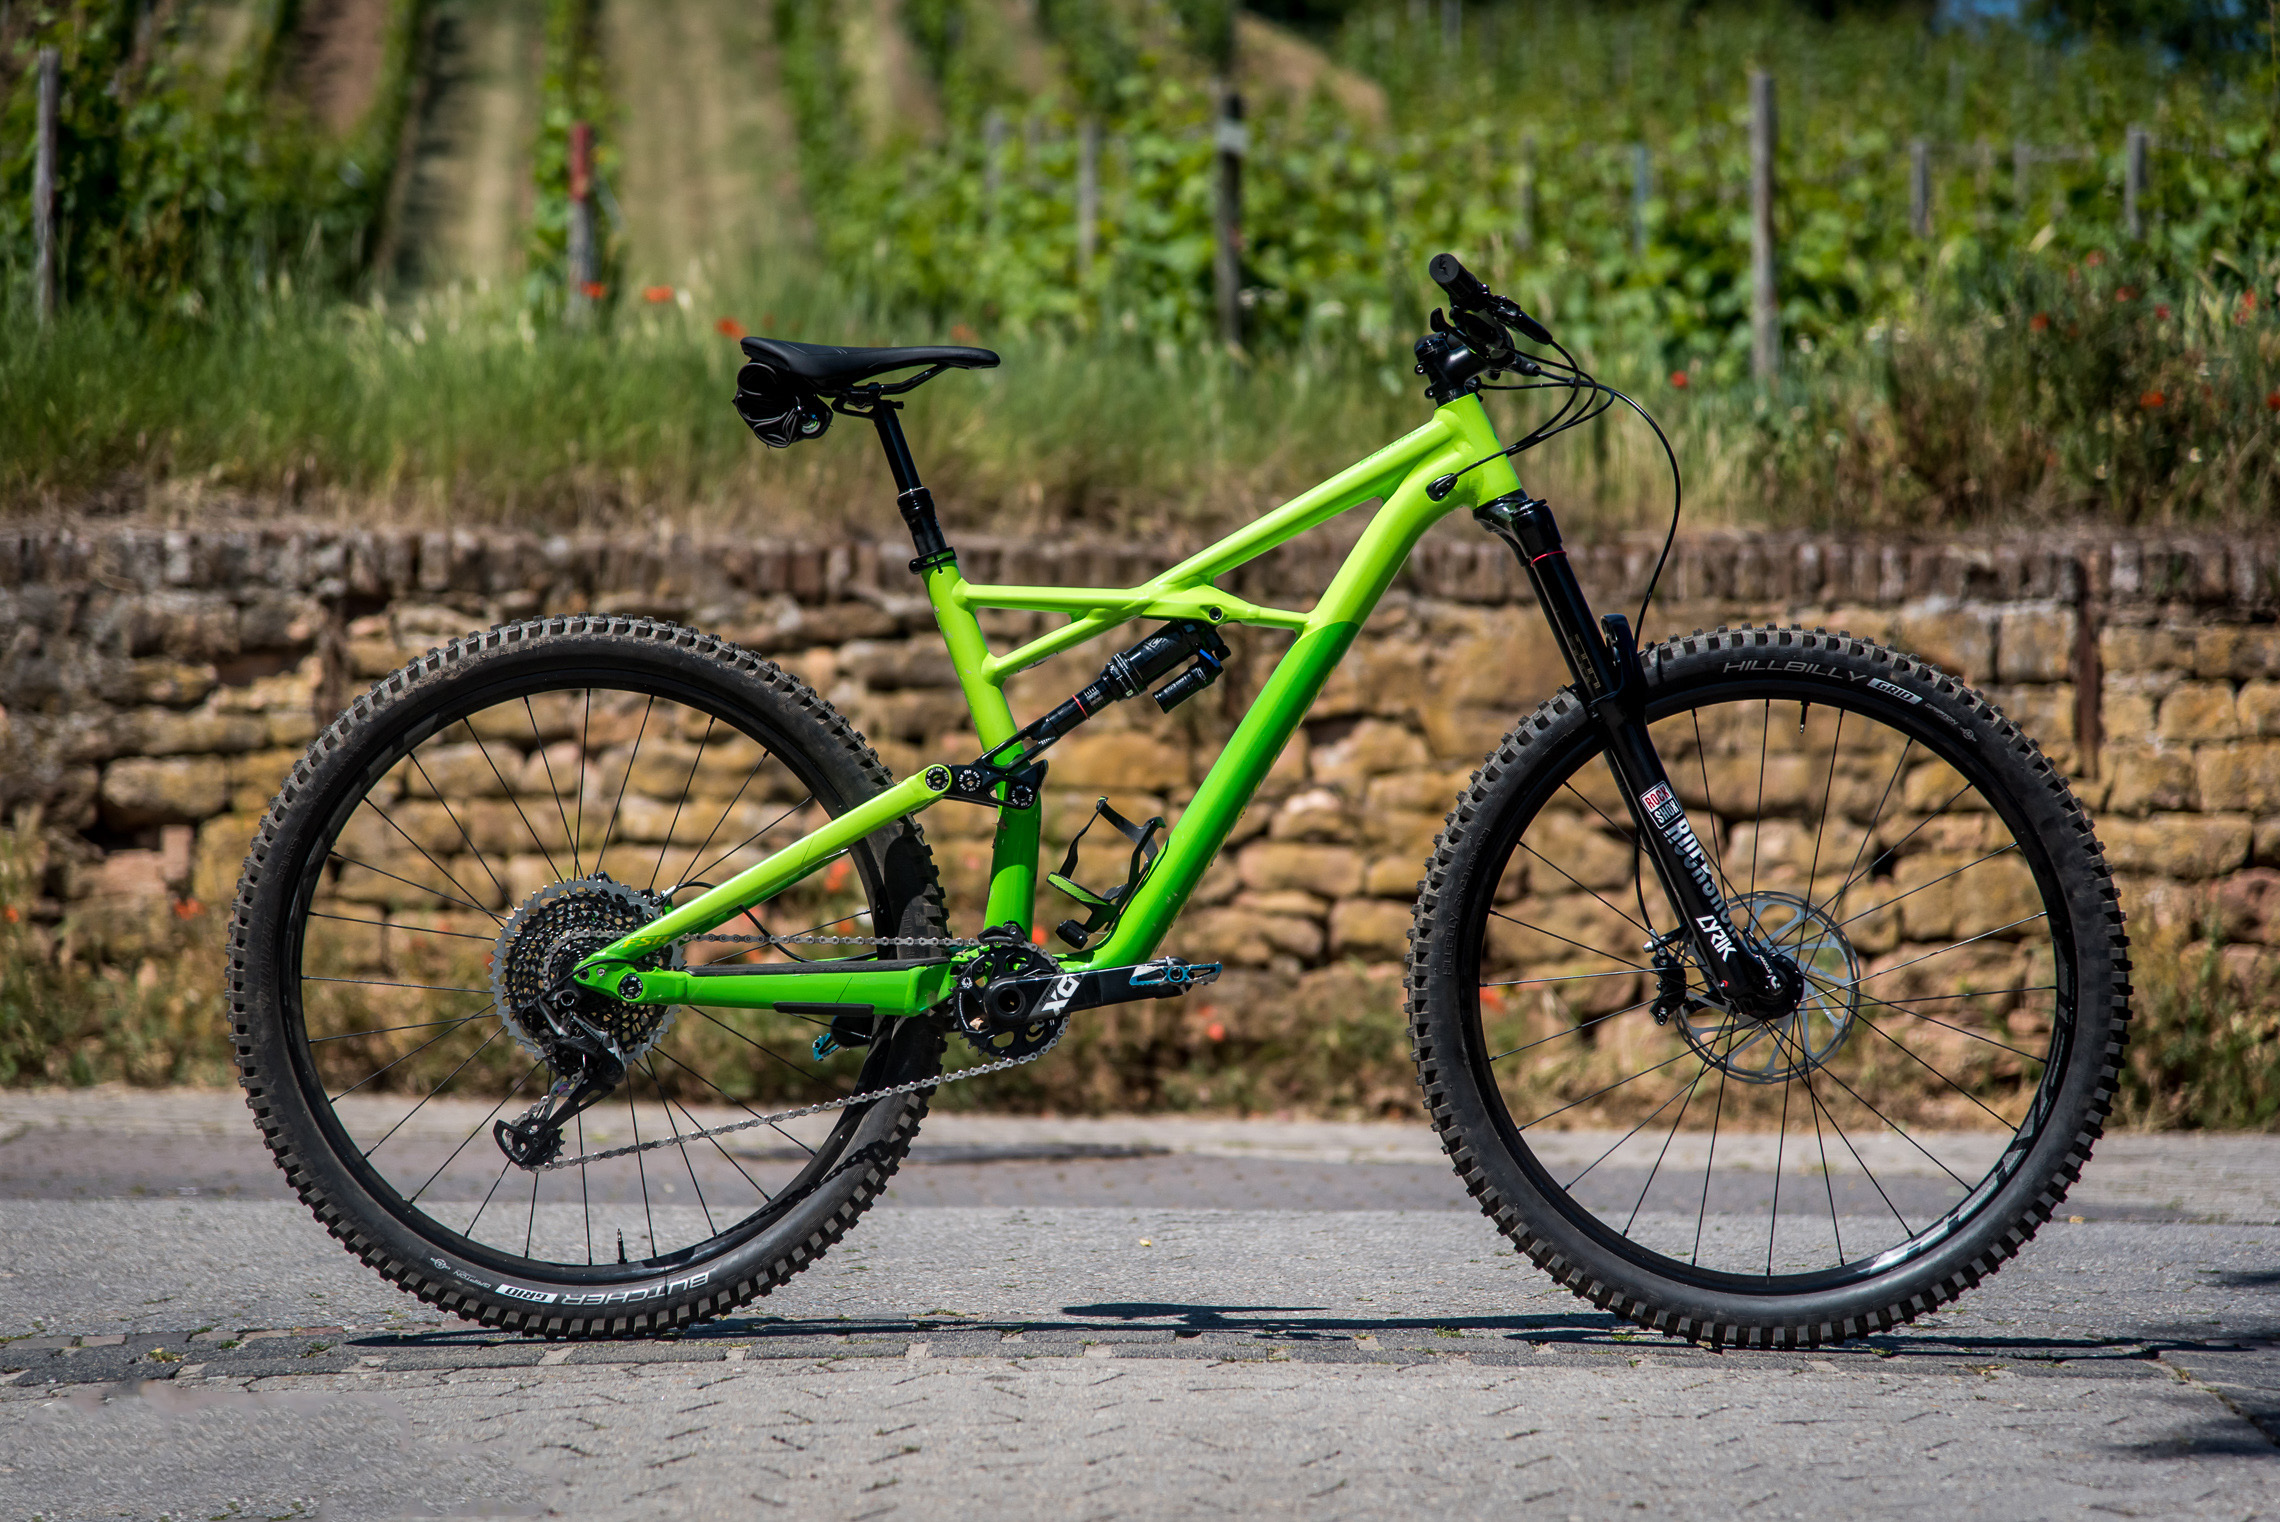 specialized enduro 29 6fattie im test die trans provence. Black Bedroom Furniture Sets. Home Design Ideas